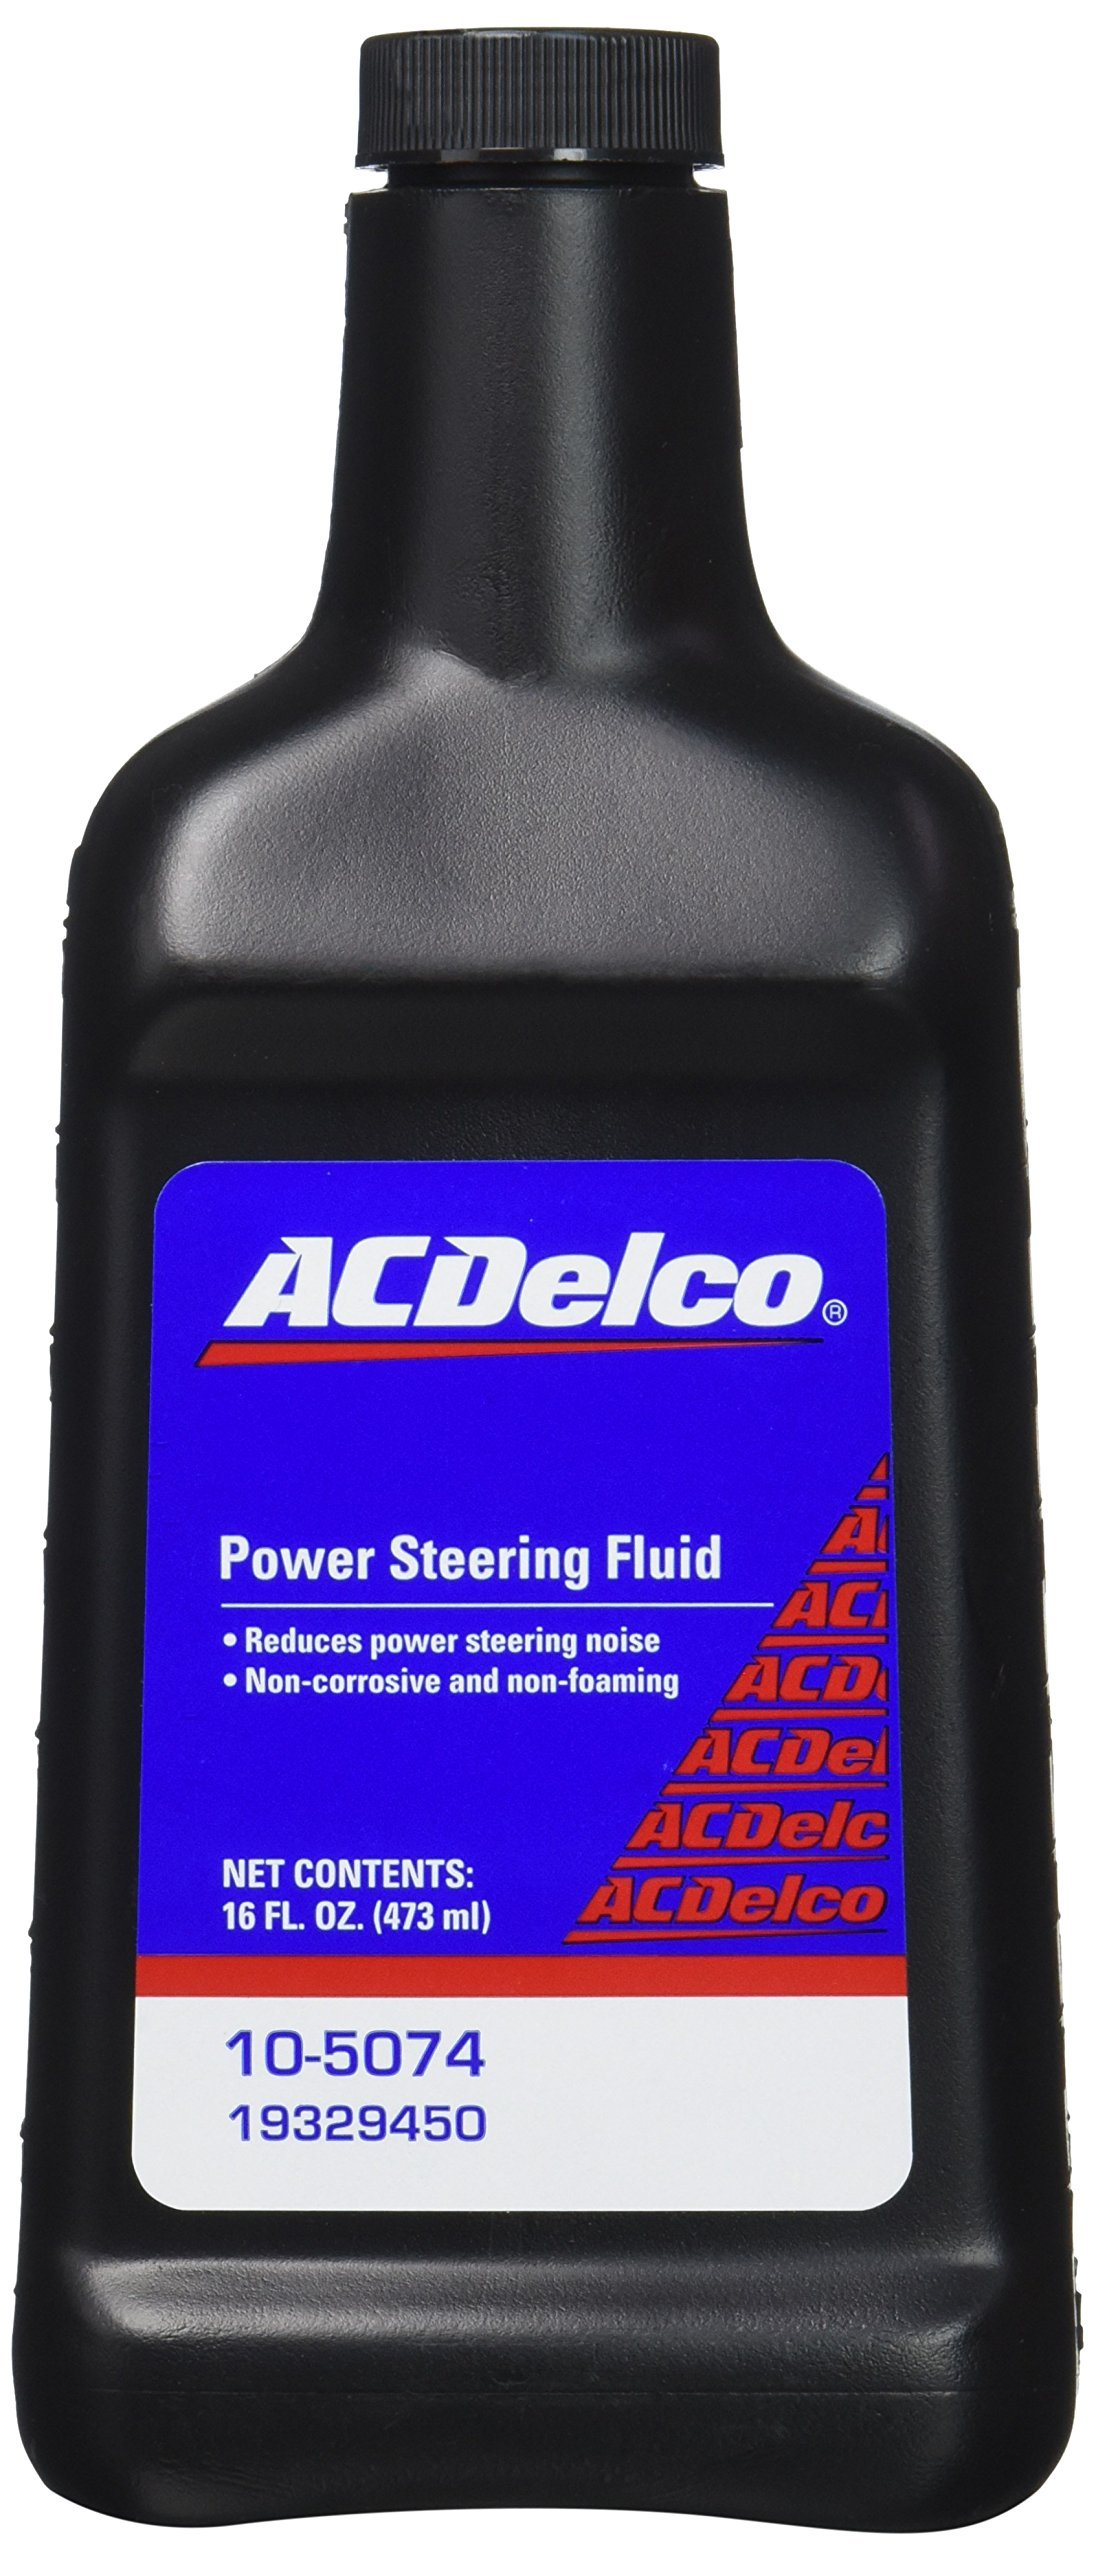 ACDelco 19329450 Power Steering Fluid - 16 oz by ACDelco